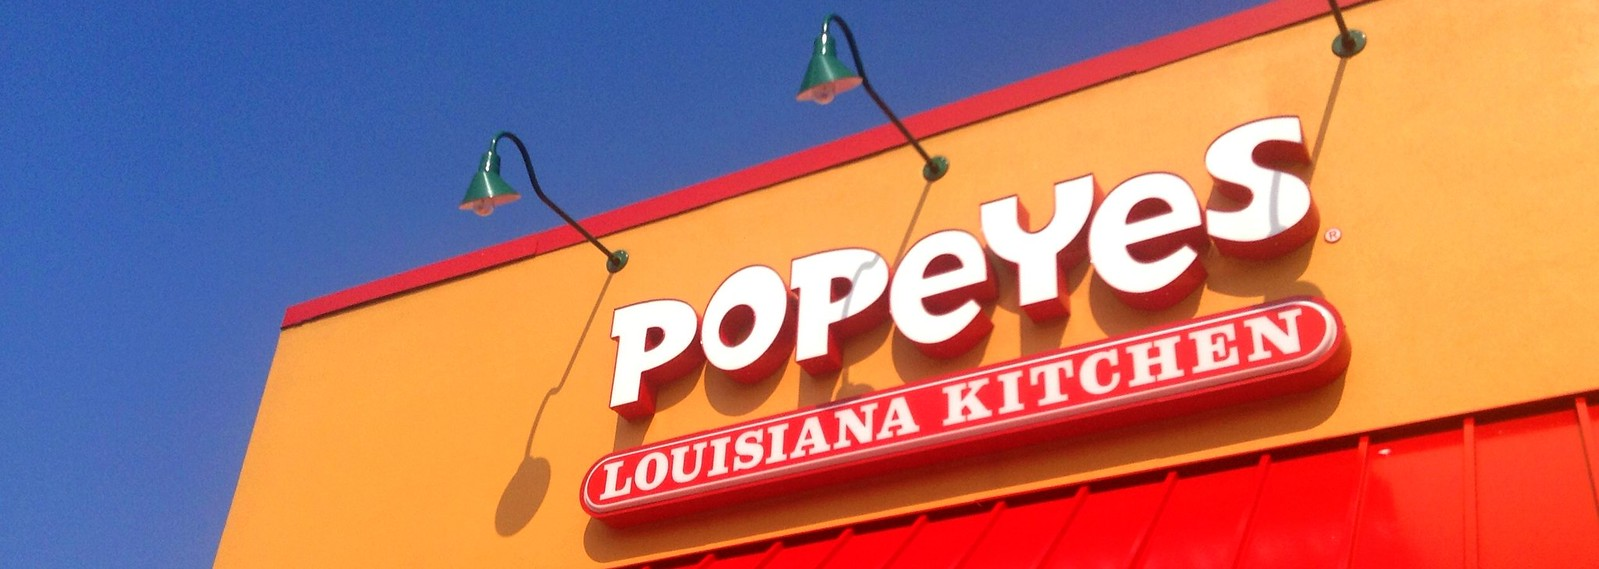 Popeyes Louisiana Kitchen Logo Popeye's Louisiana Kitchen Sign Logo Chicken  Flickr